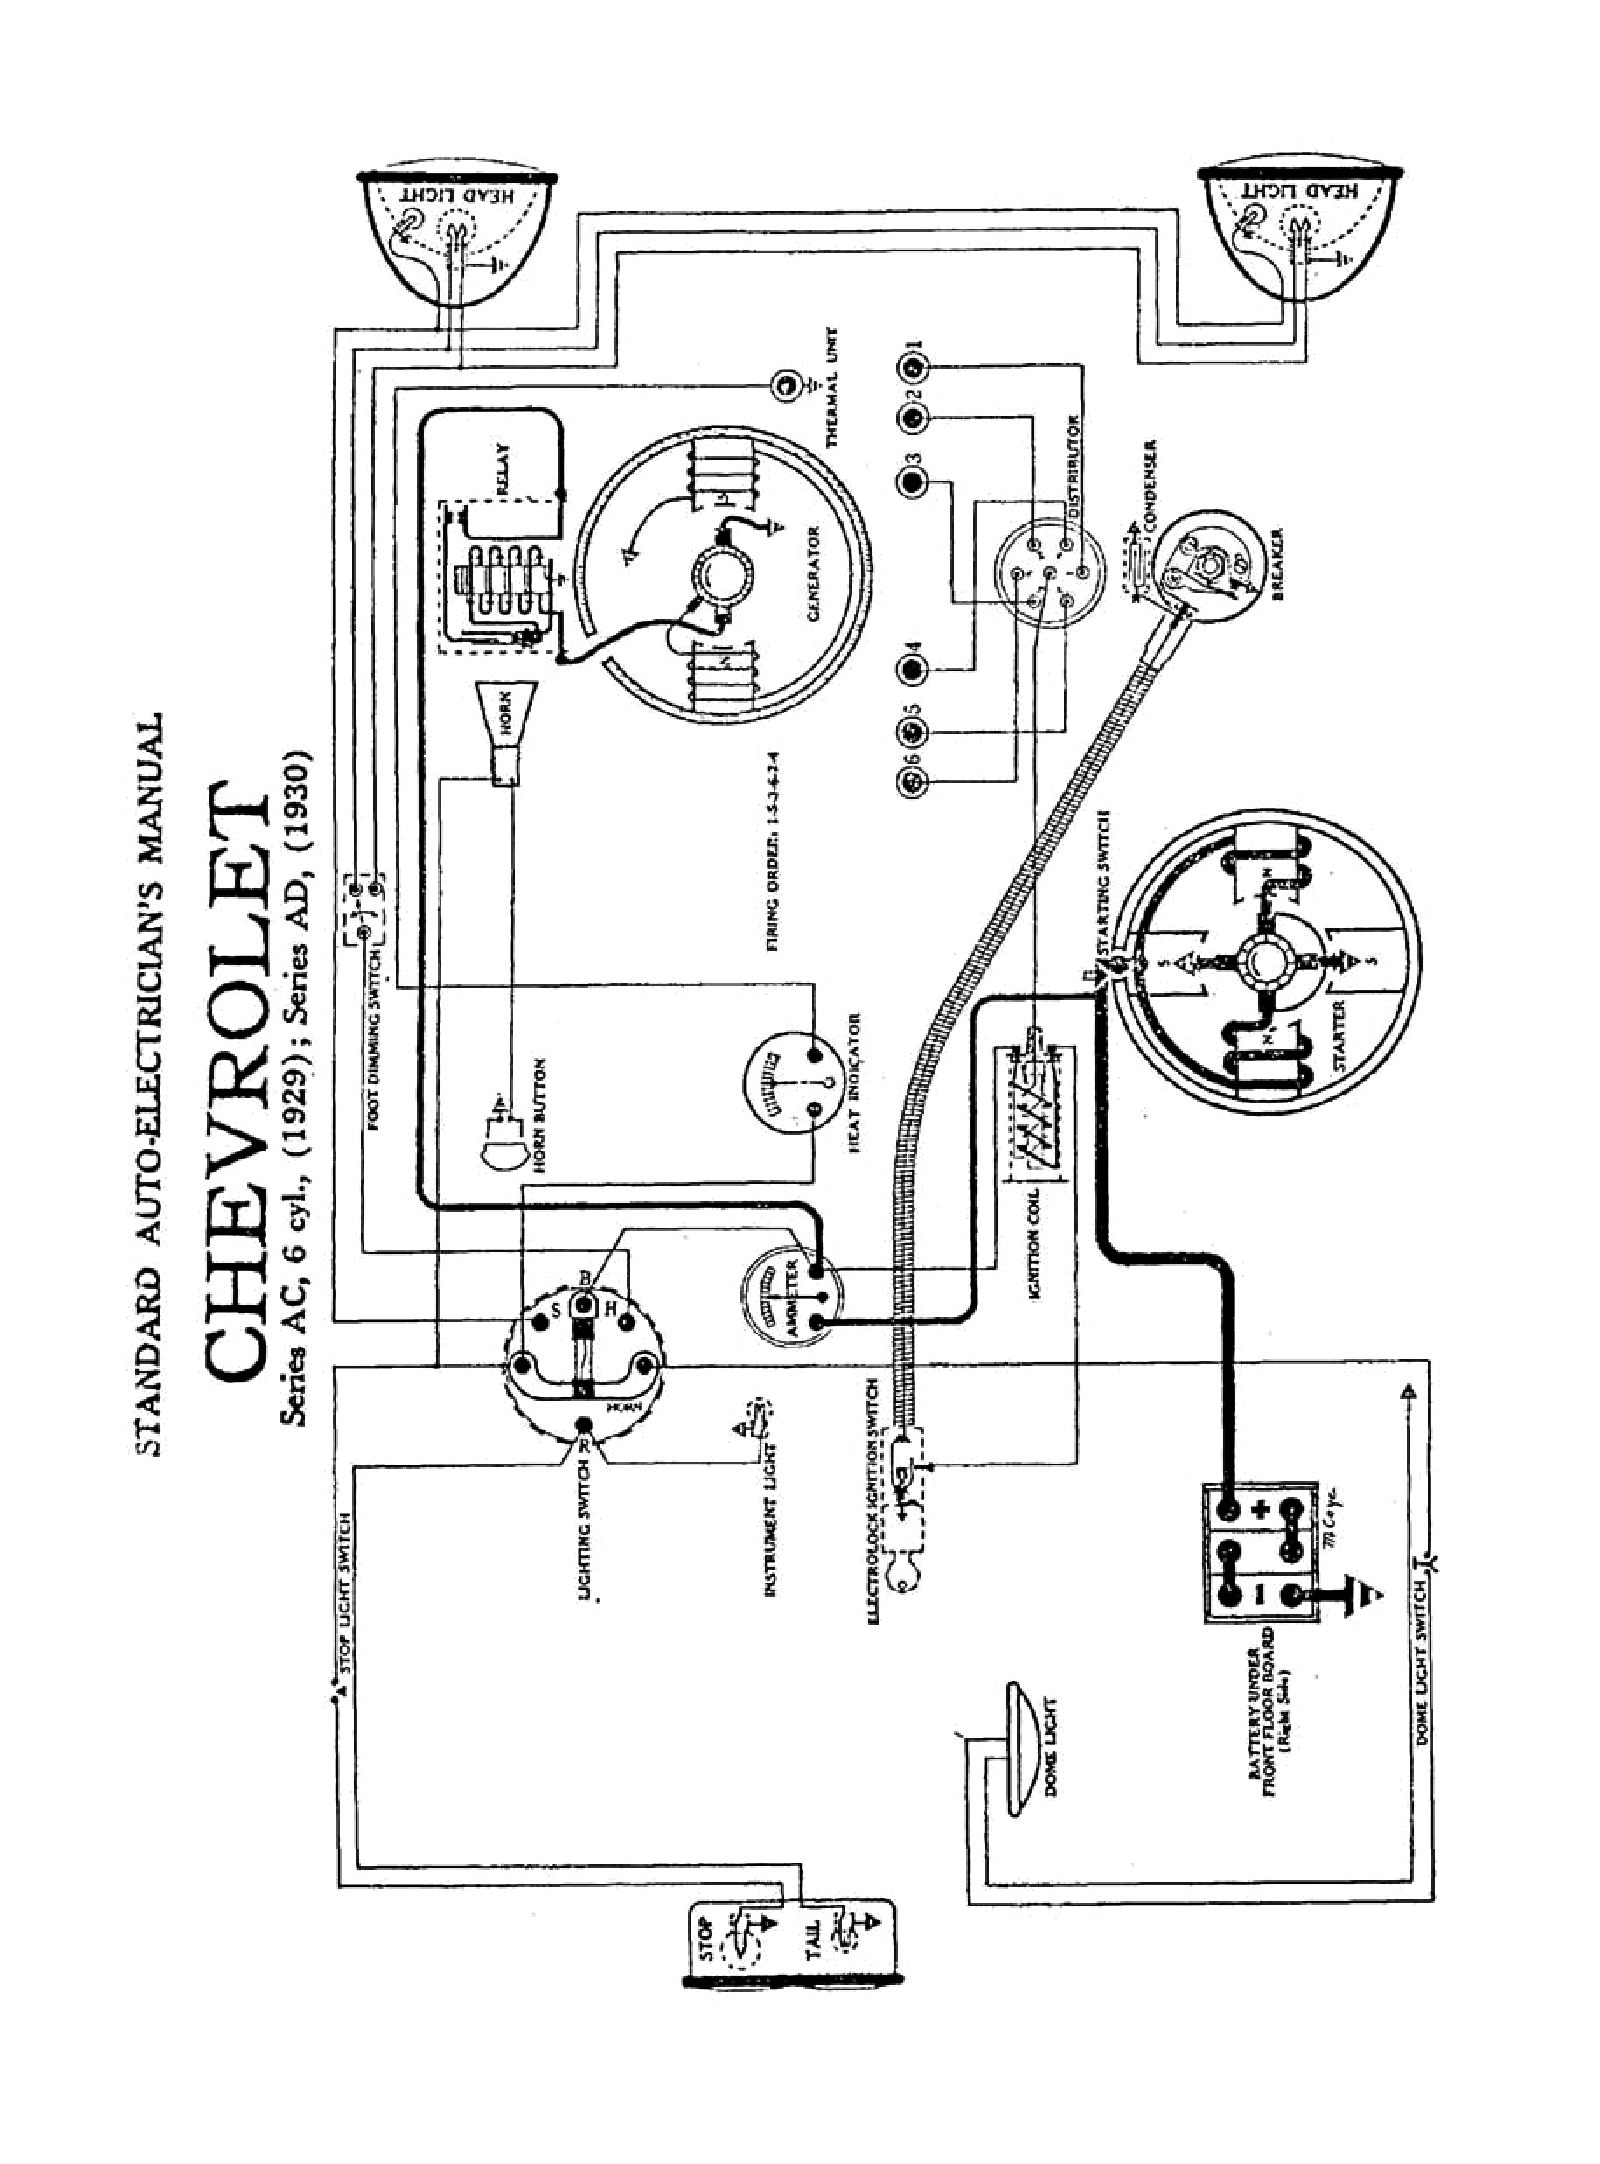 Chevy Headlight Wiring Diagram